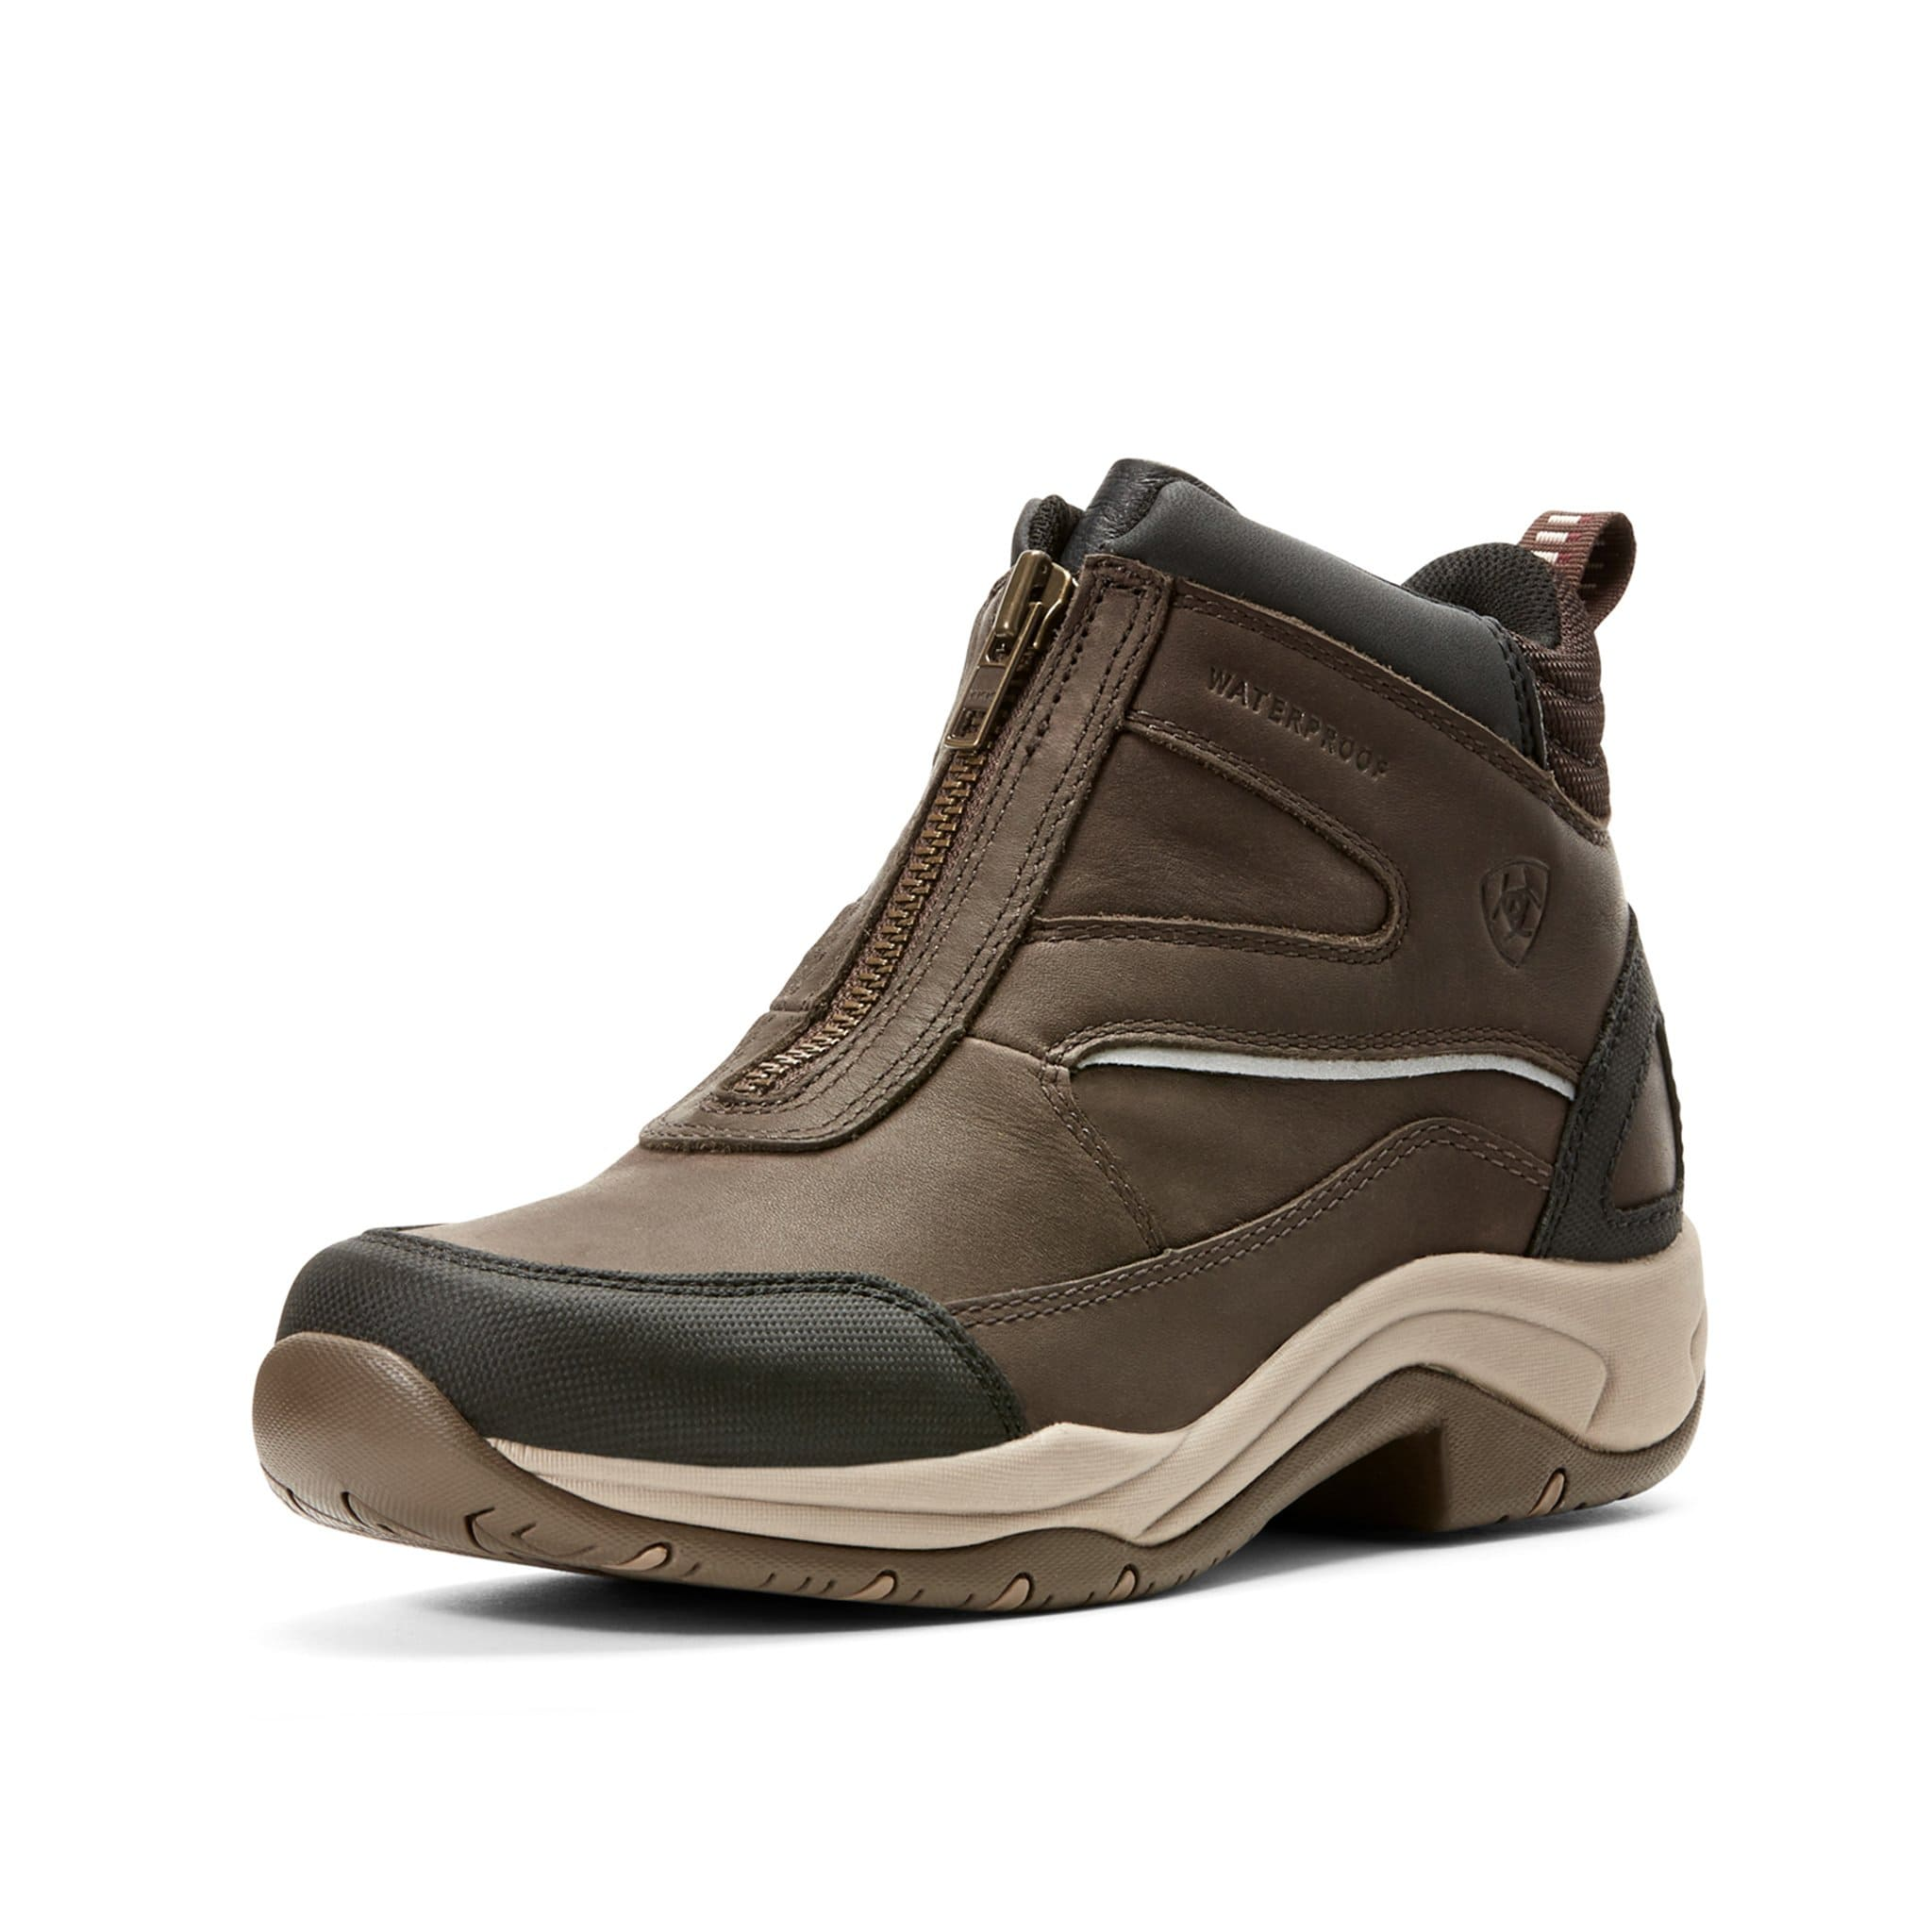 10027336 Telluride Zip H2O Boots